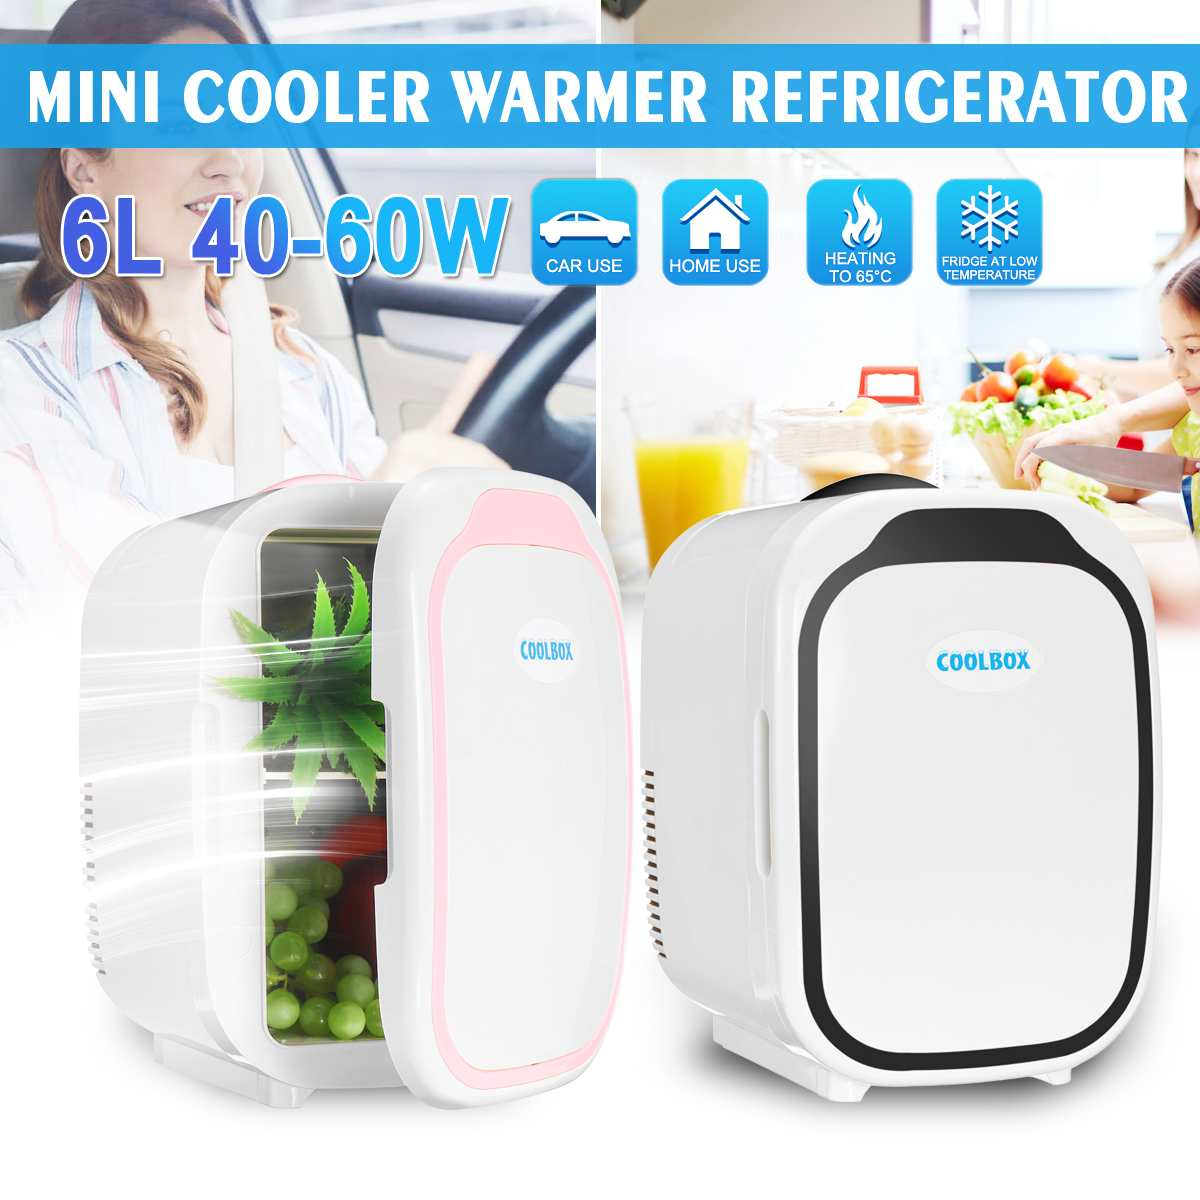 6L Mini Fridge Dual-Use Quiet Refrigerators Low Noise Refrigerators Freezer Cooling Fridge